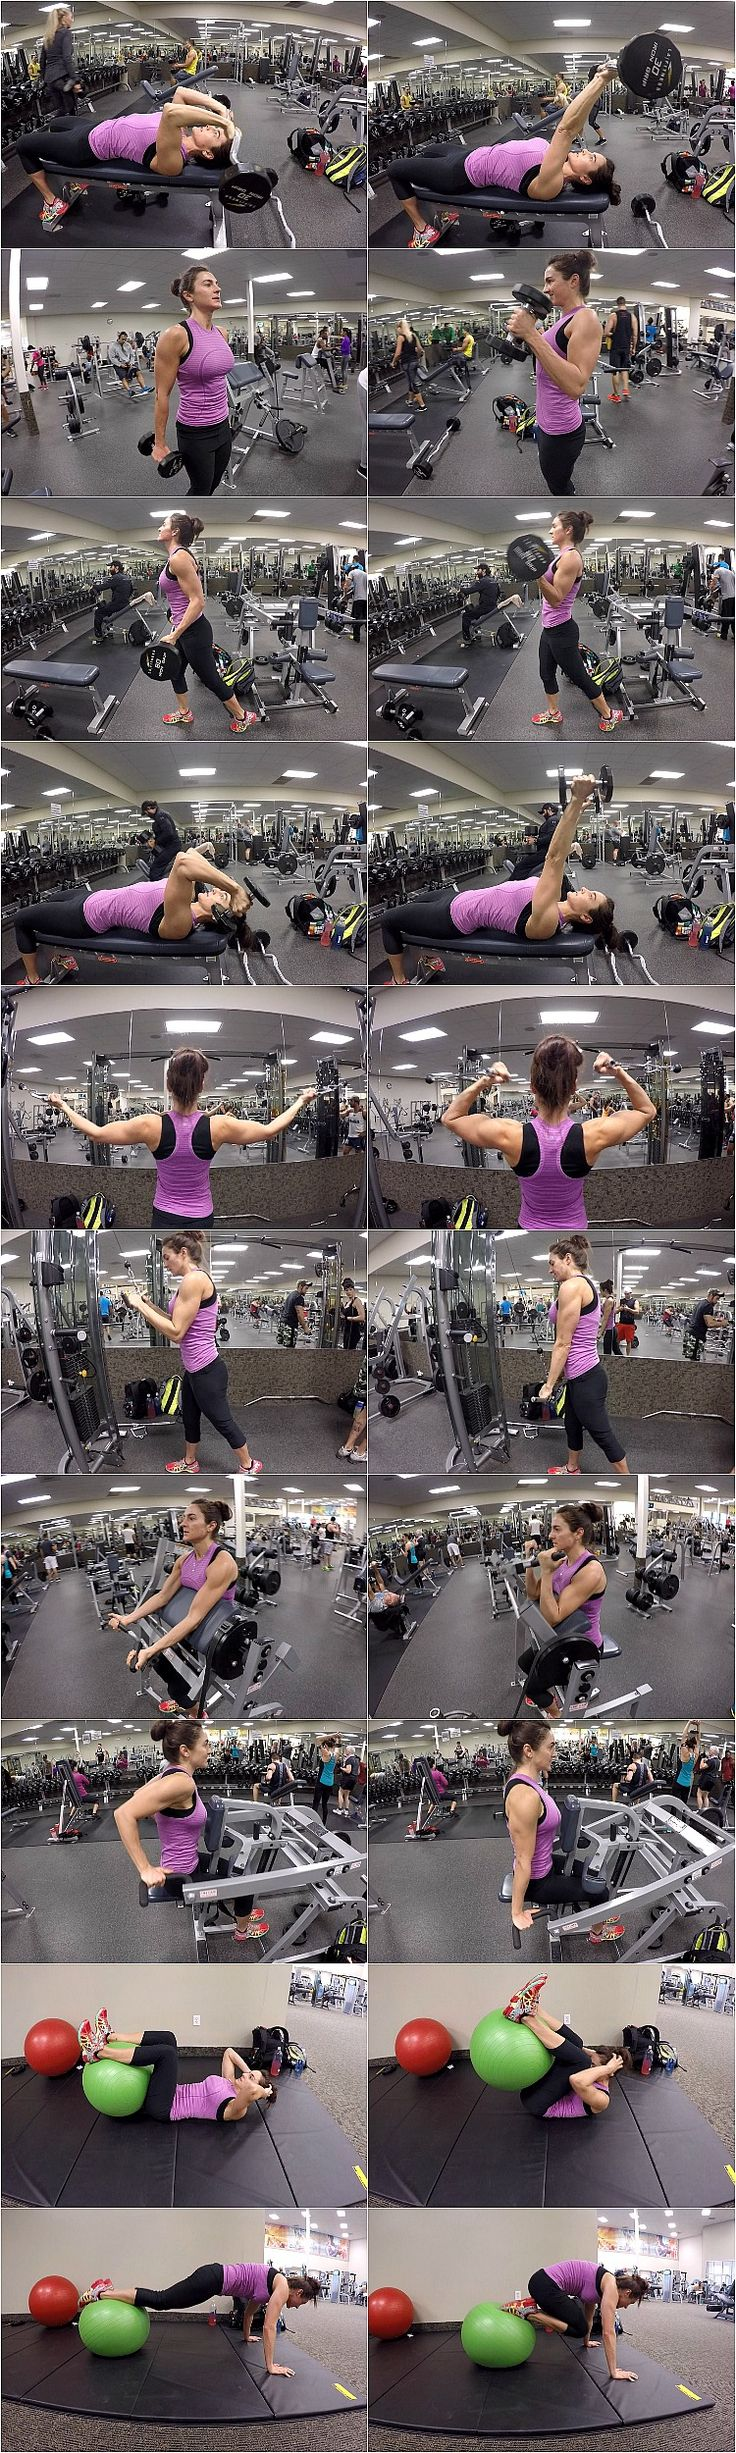 10 WEEKS TO FITNESS DAY 39-BICEPS, TRICEPS, & ABS